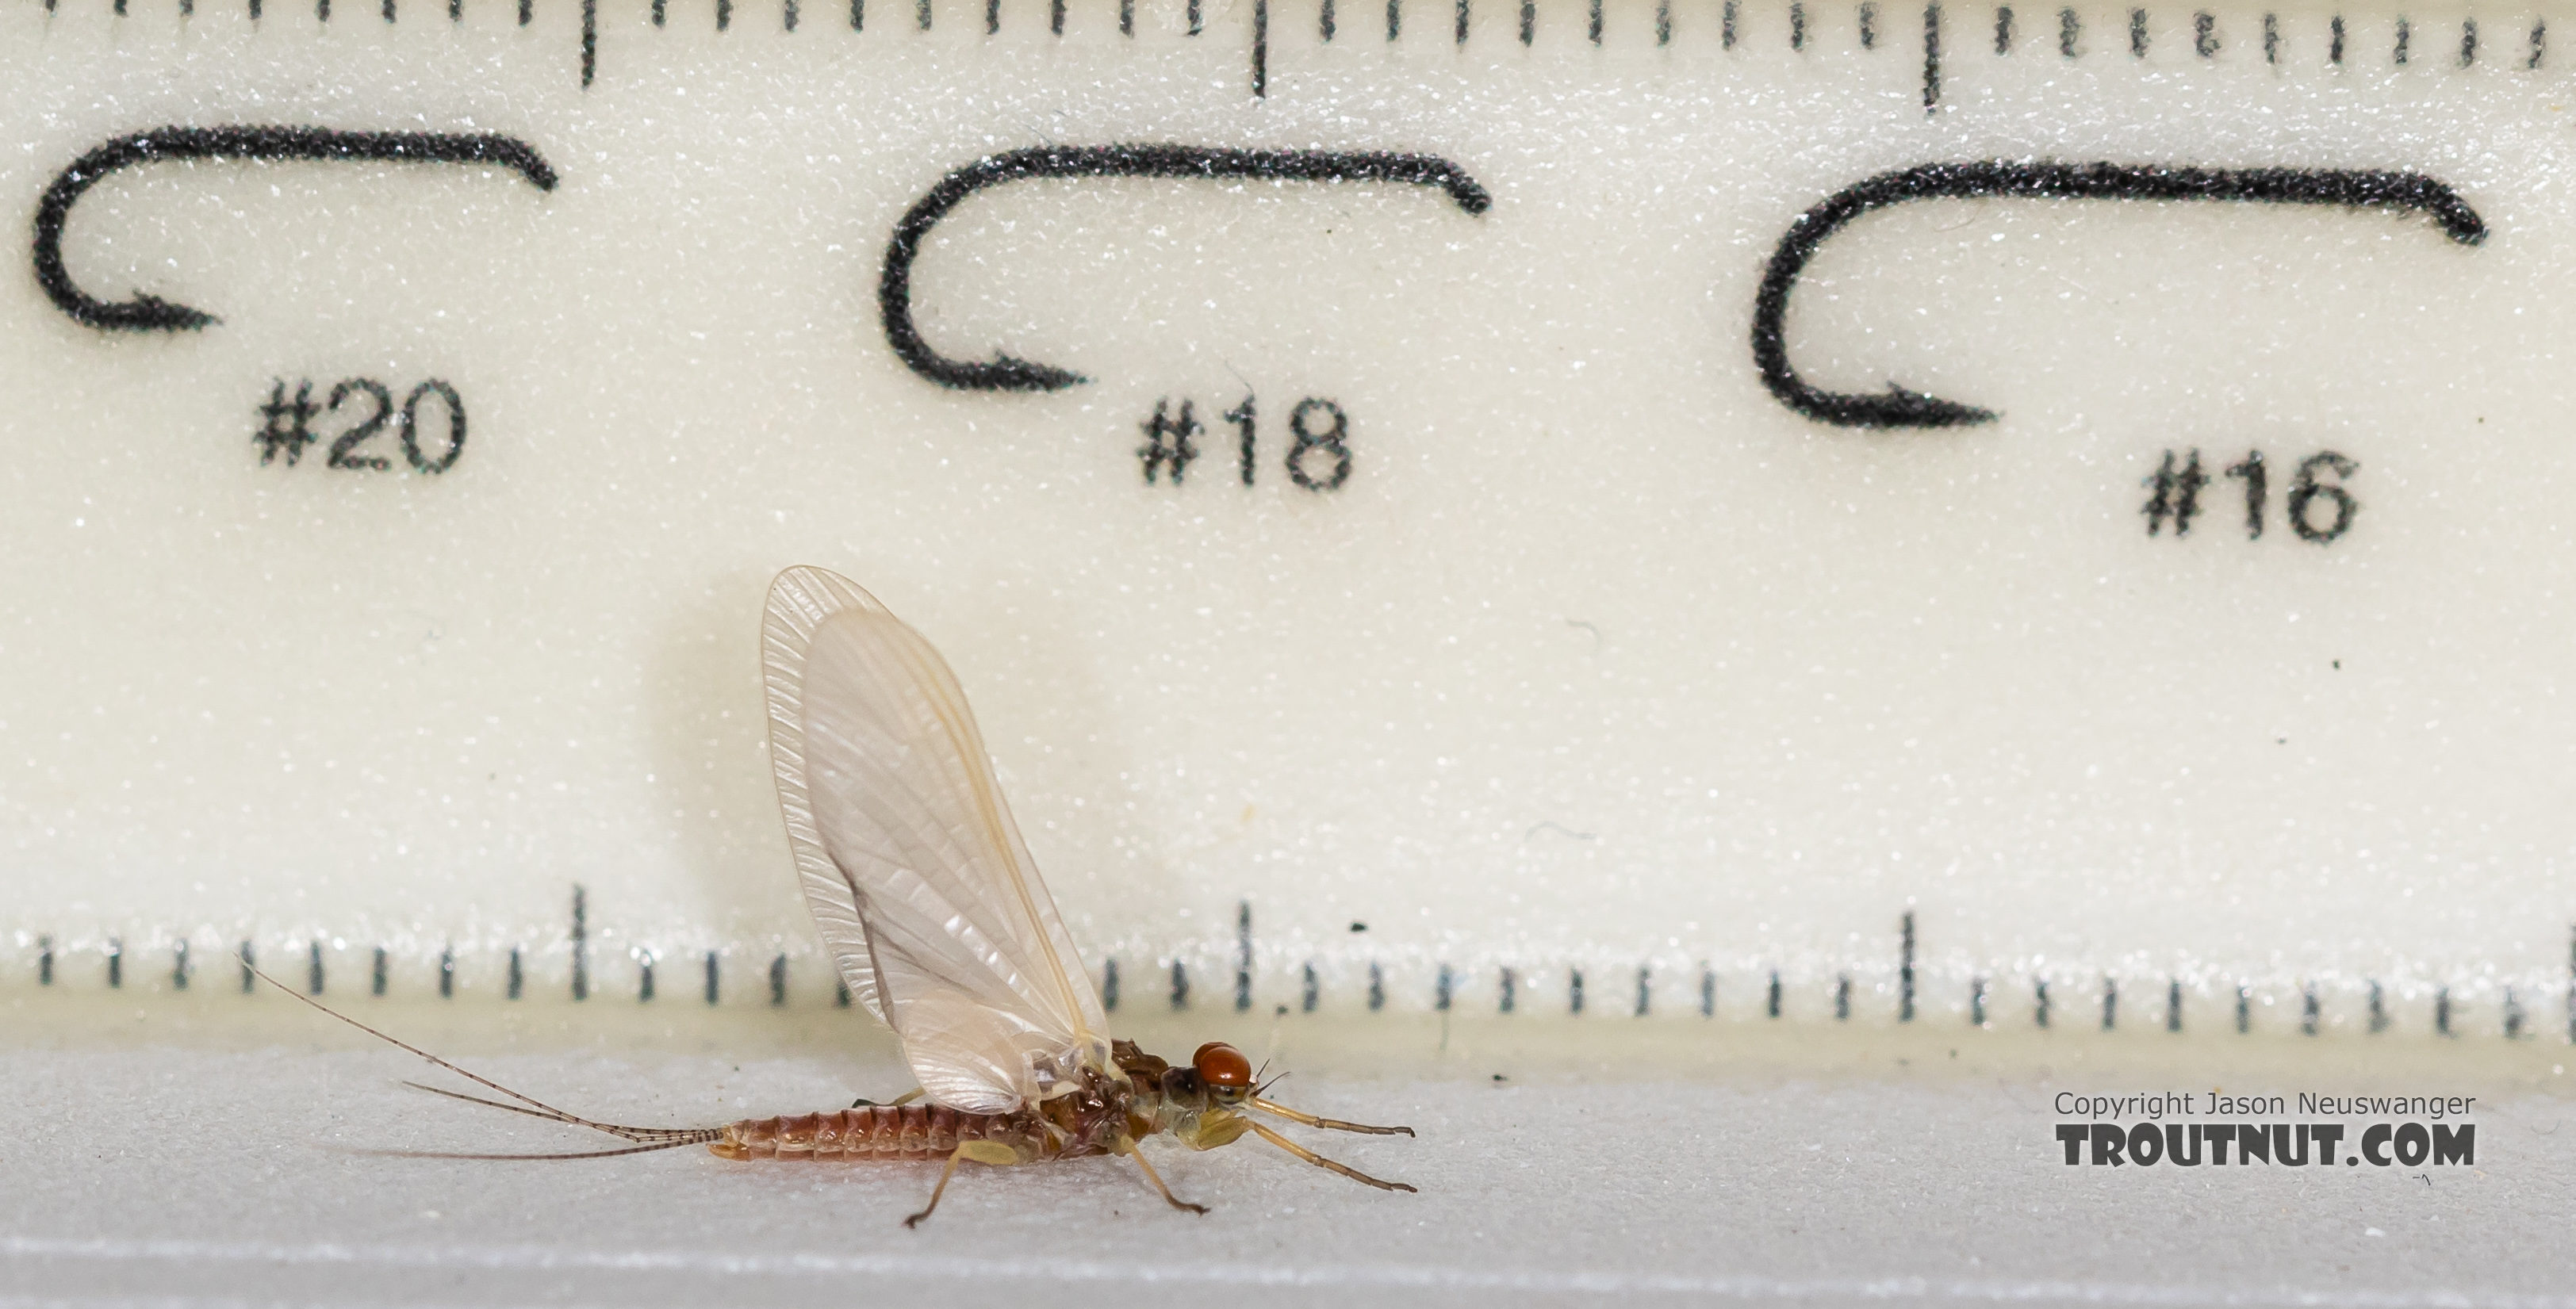 Male Ephemerella aurivillii Mayfly Dun from the Madison River in Montana